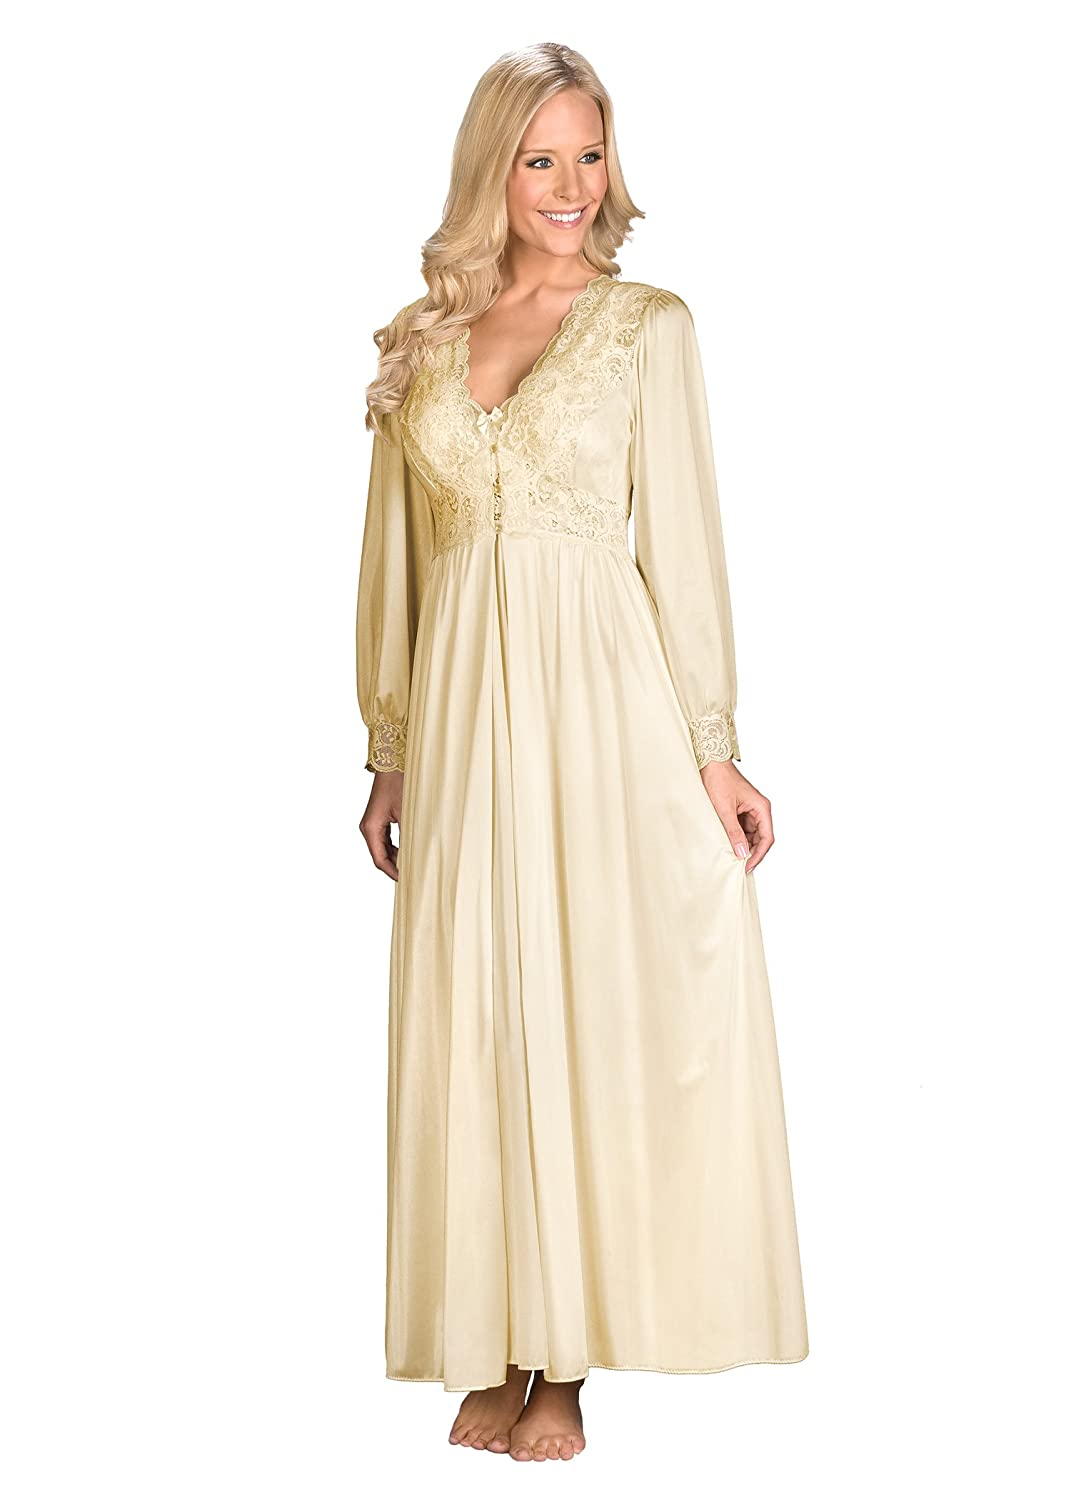 Vintage Inspired Nightgowns, Robes, Pajamas, Baby Dolls Shadowline Womens Silhouette 54 Long Sleeve Long Coat $60.00 AT vintagedancer.com